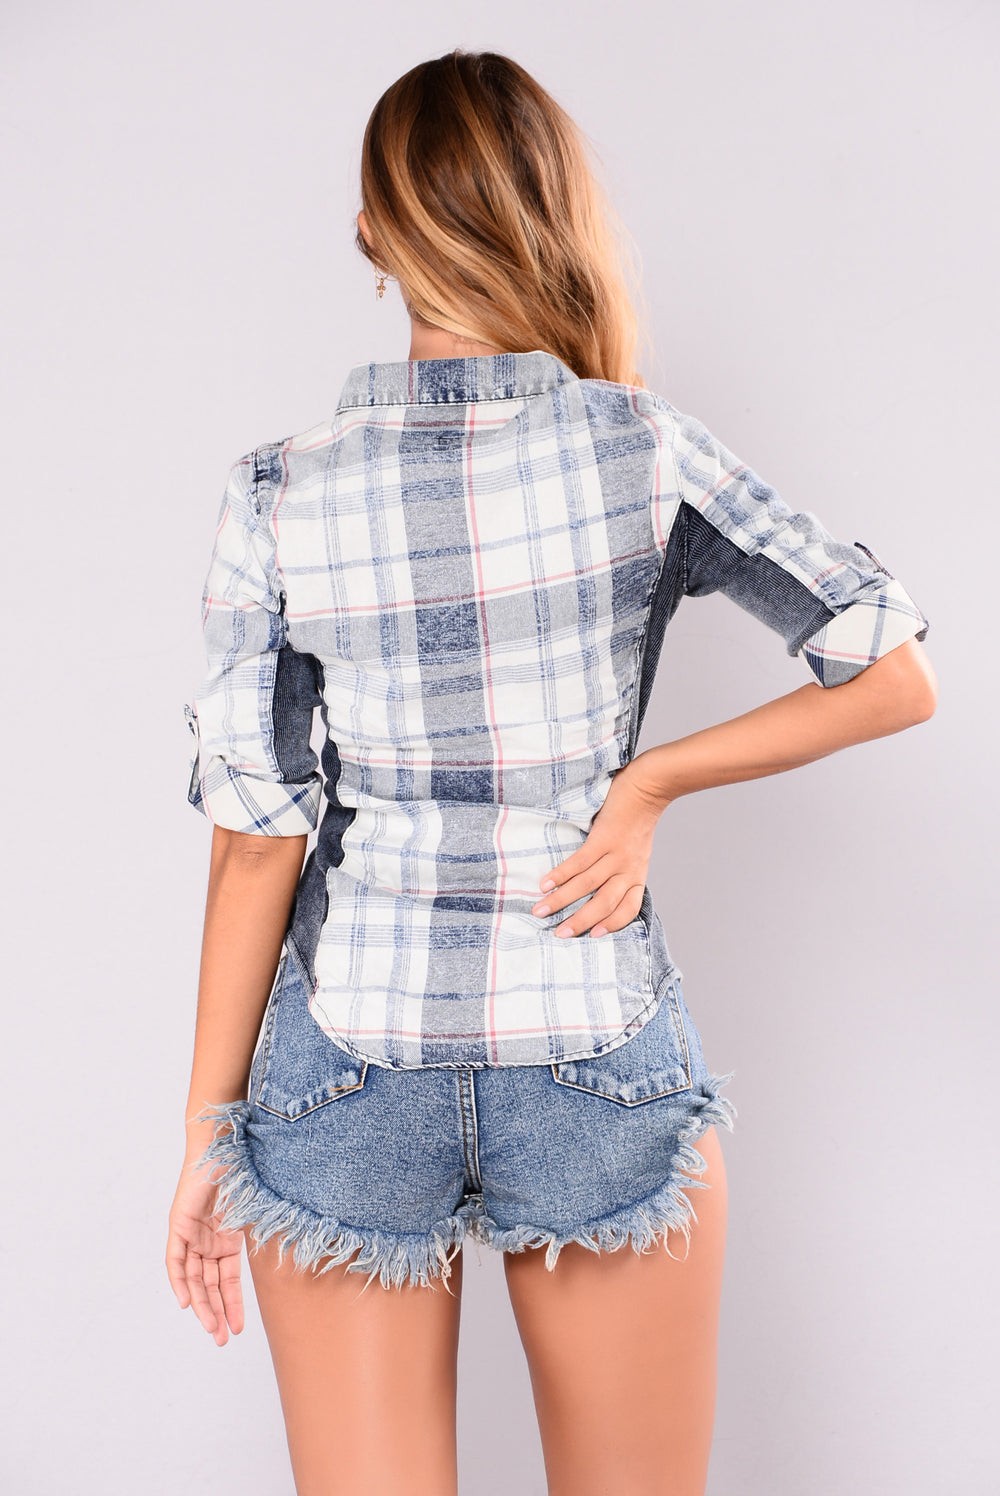 Favorite Flannel II Top - Indigo